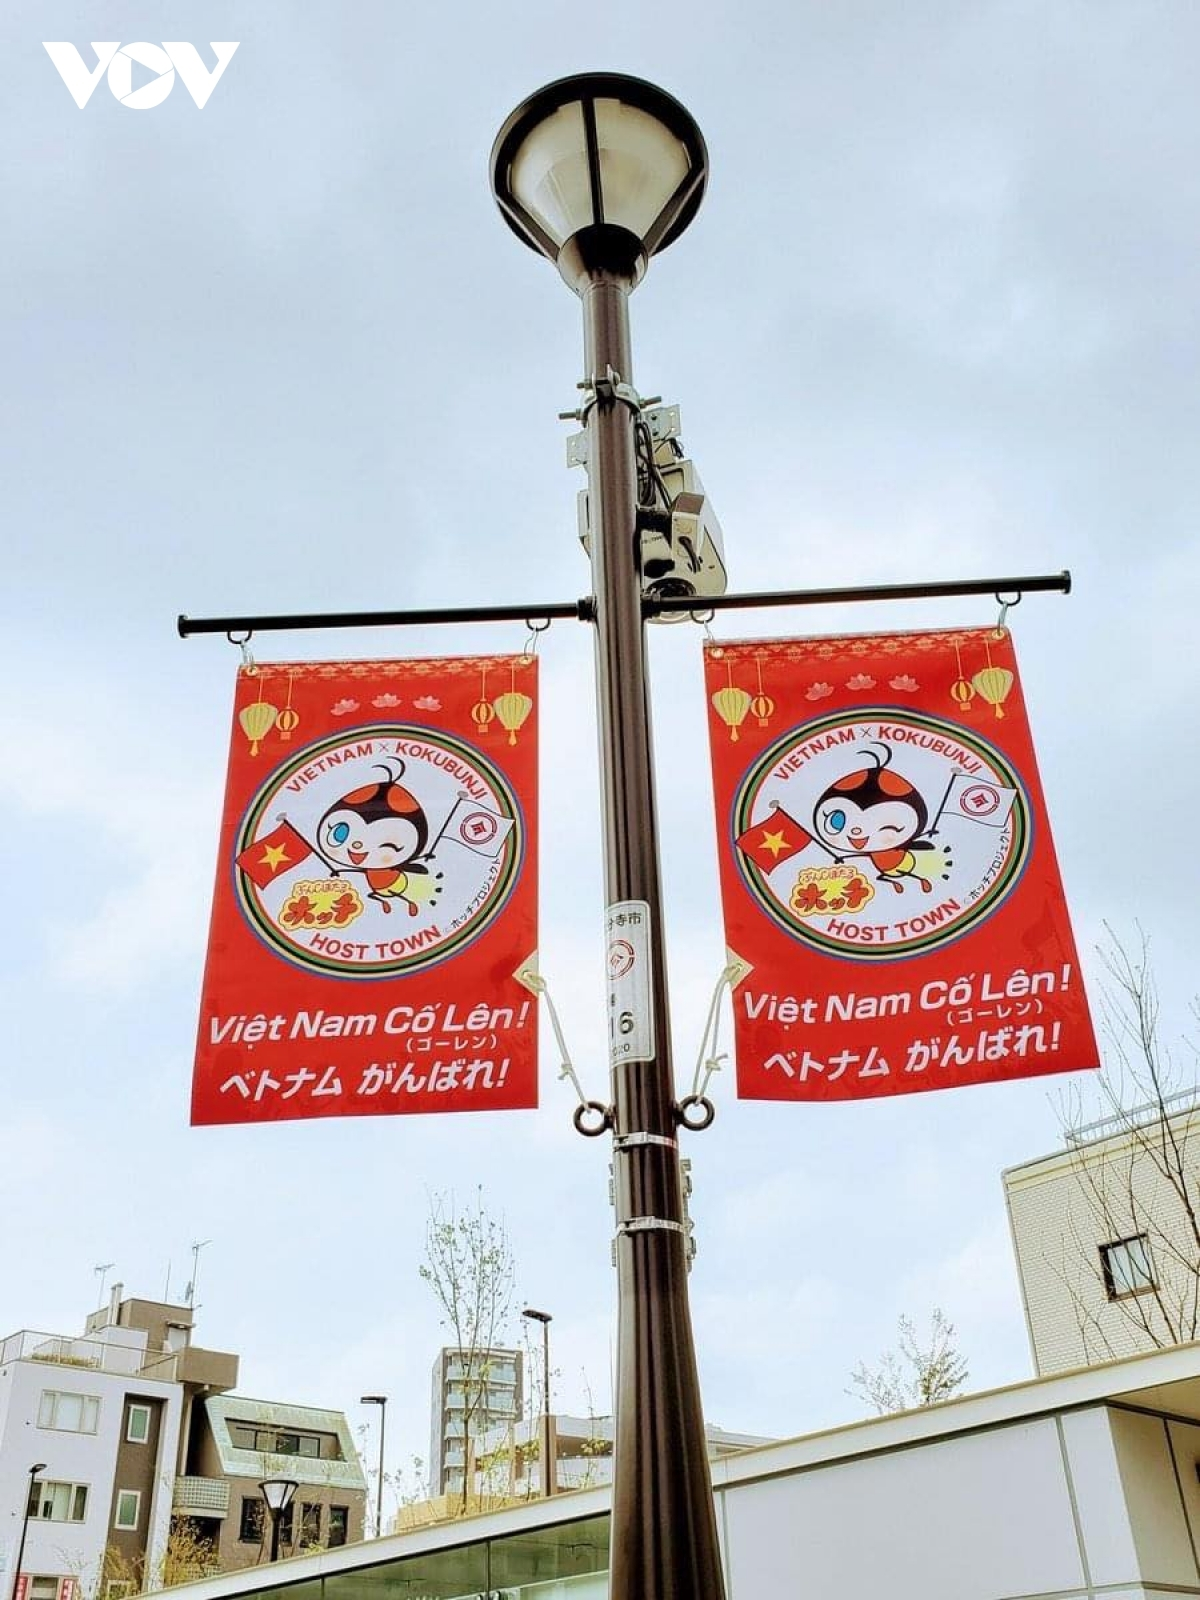 Posters to cheer the Vietnamese sporting delegation are hung on the streets of Kokubunji city, which has been designated as the host town of Vietnam during the Tokyo Olympics.